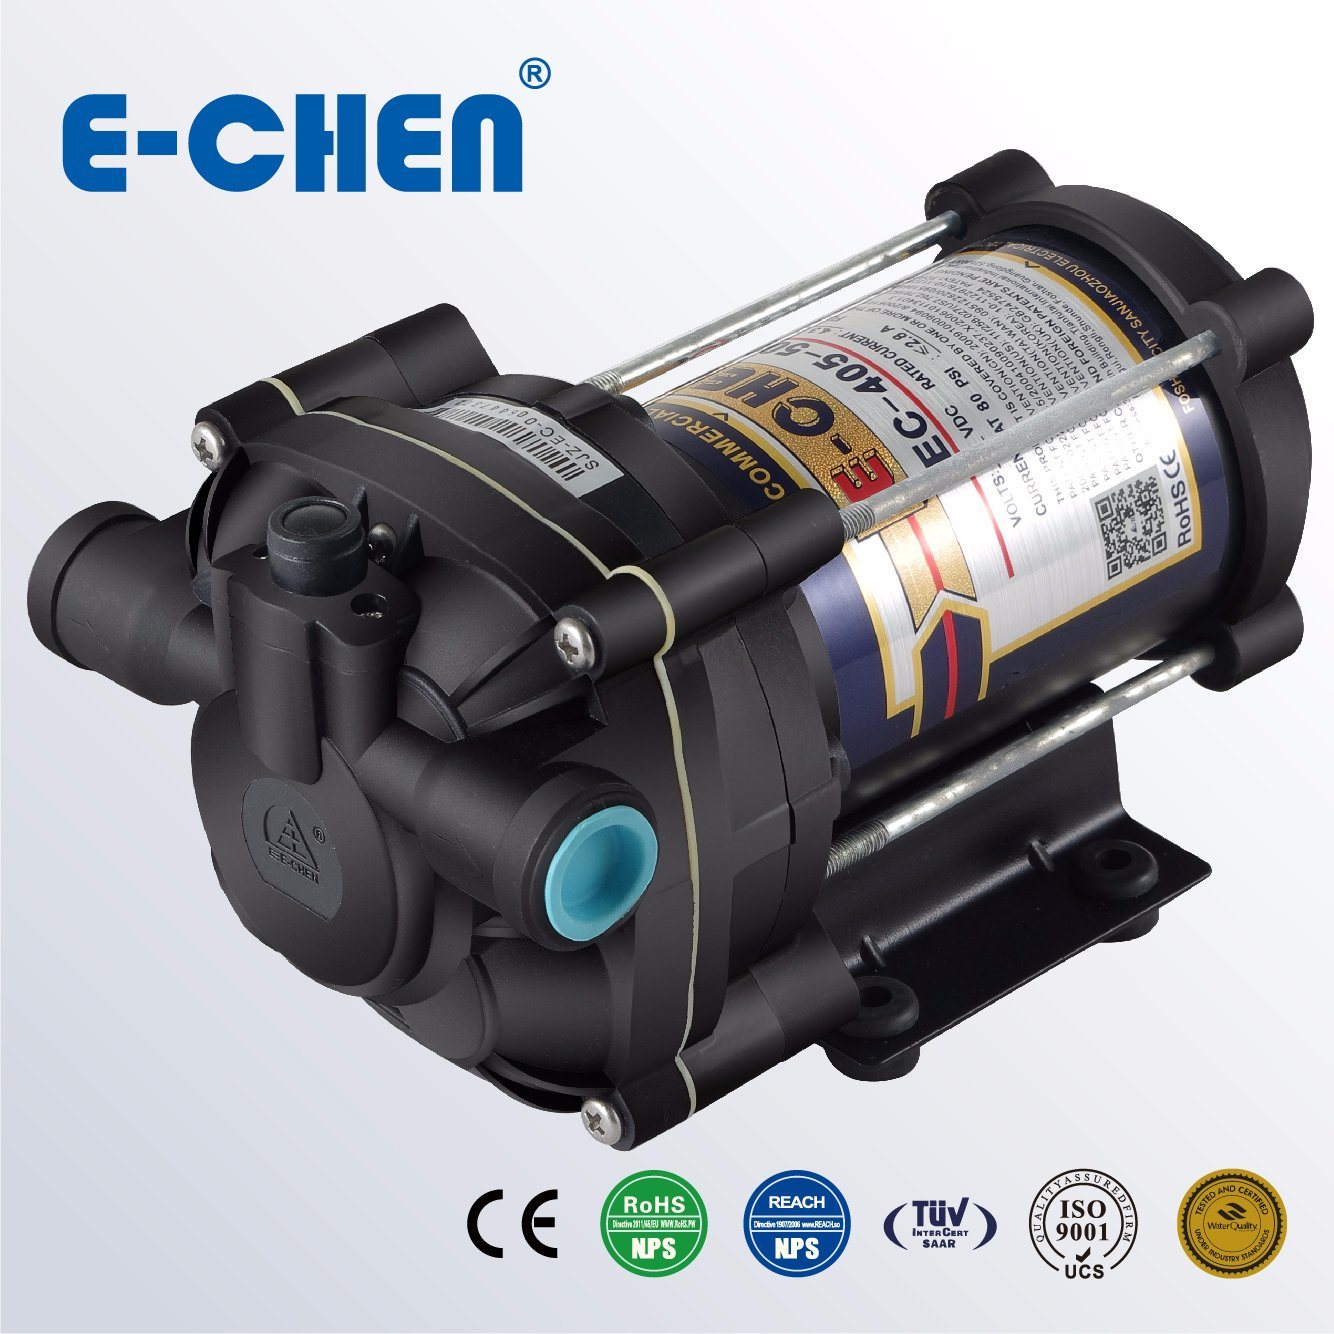 800 Gpd Diaphragm Pump 80psi 5 3 L M Commercial Reverse Osmosis 408AC china water system pump (fl 35, fl 40, fl 43) china industrial  at bayanpartner.co